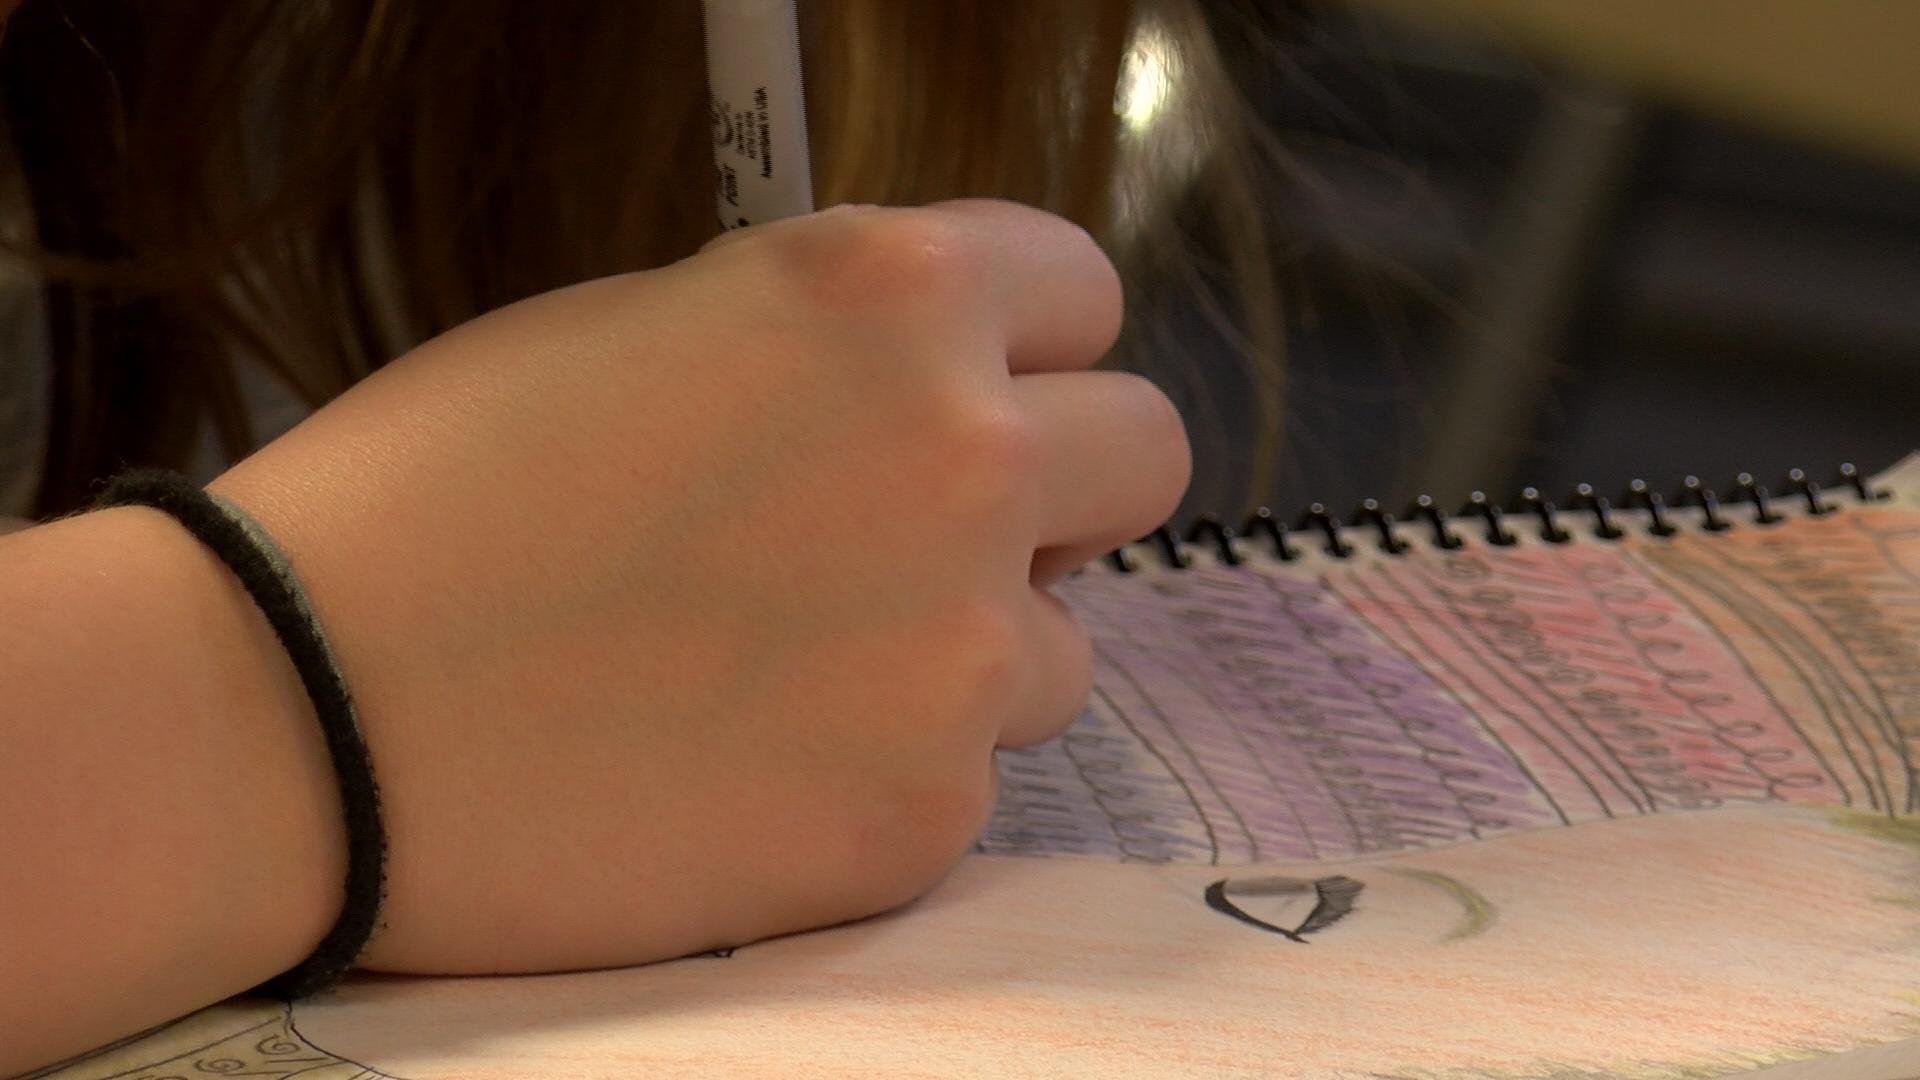 Student works on an art project at the La Crosse's Lincoln Middle School.